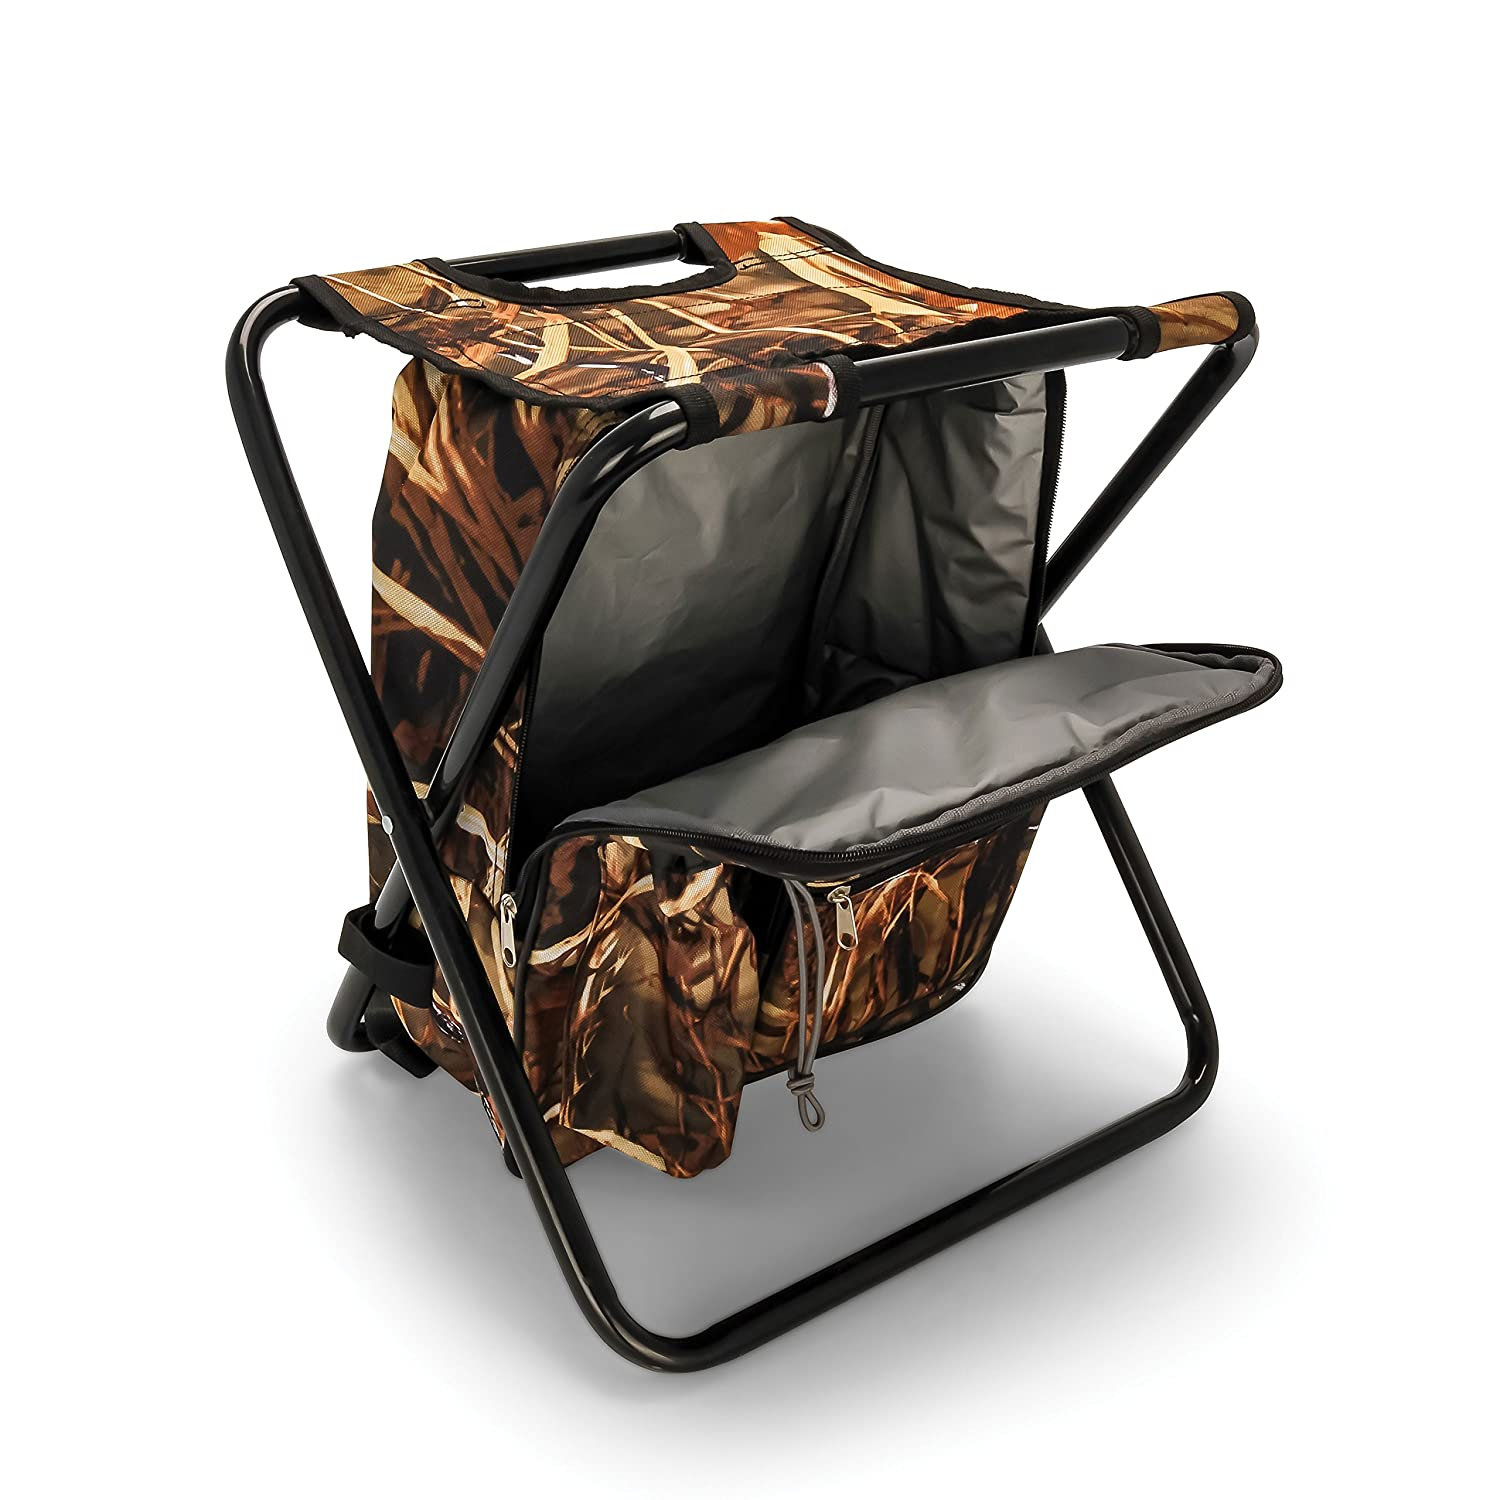 Camco Folding Camping Stool Backpack Cooler Trio- Camping Hiking Bag with  Waterproof Insulated Cooler Pockets and Sturdy Legs for Seating 22d4ede668ecb